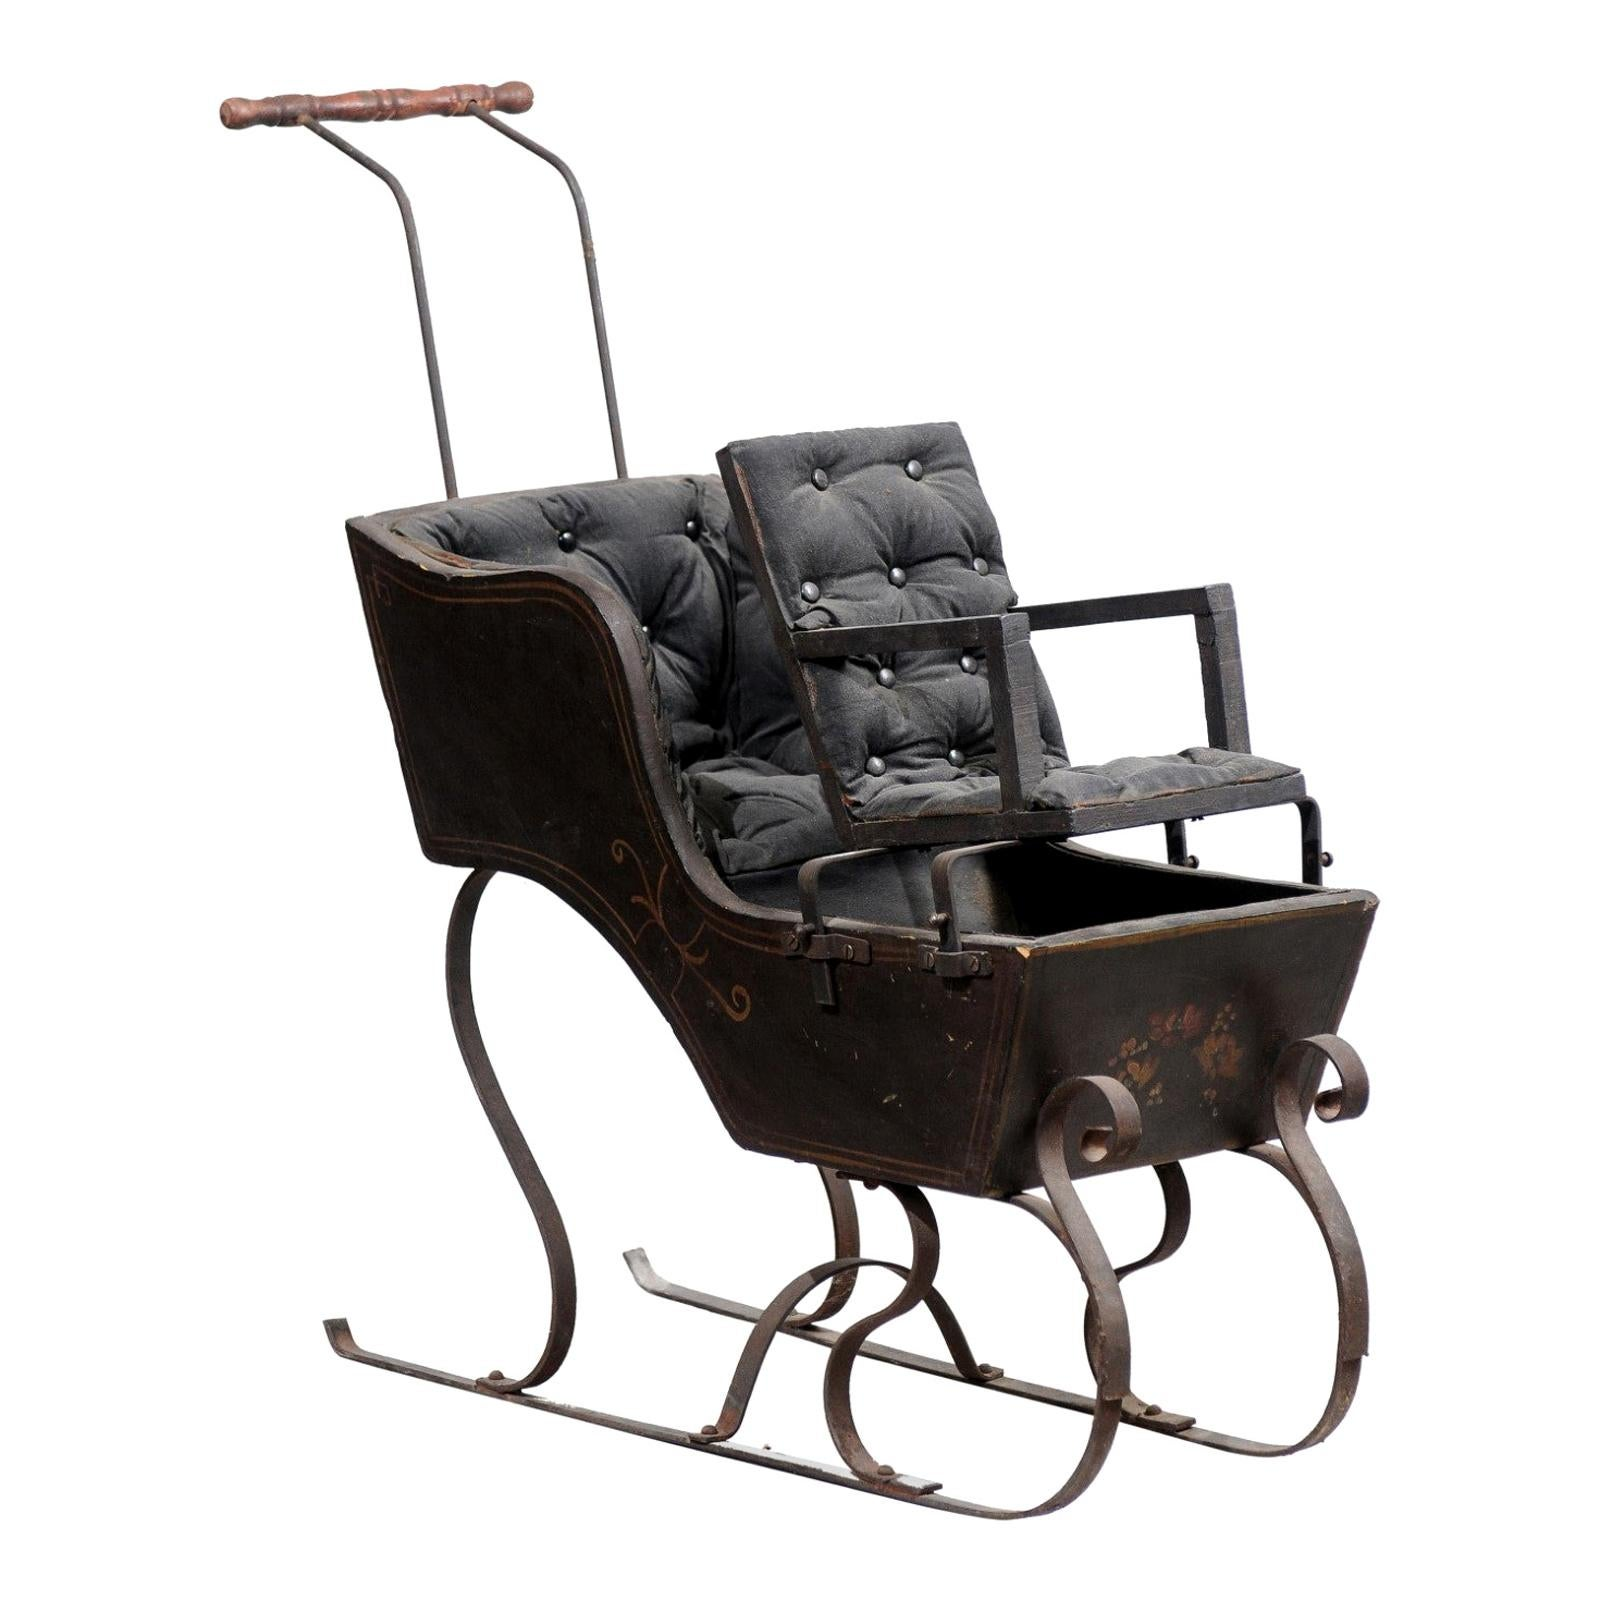 French 19th Century Child's Sleigh with Tufted Upholstery and Floral Décor